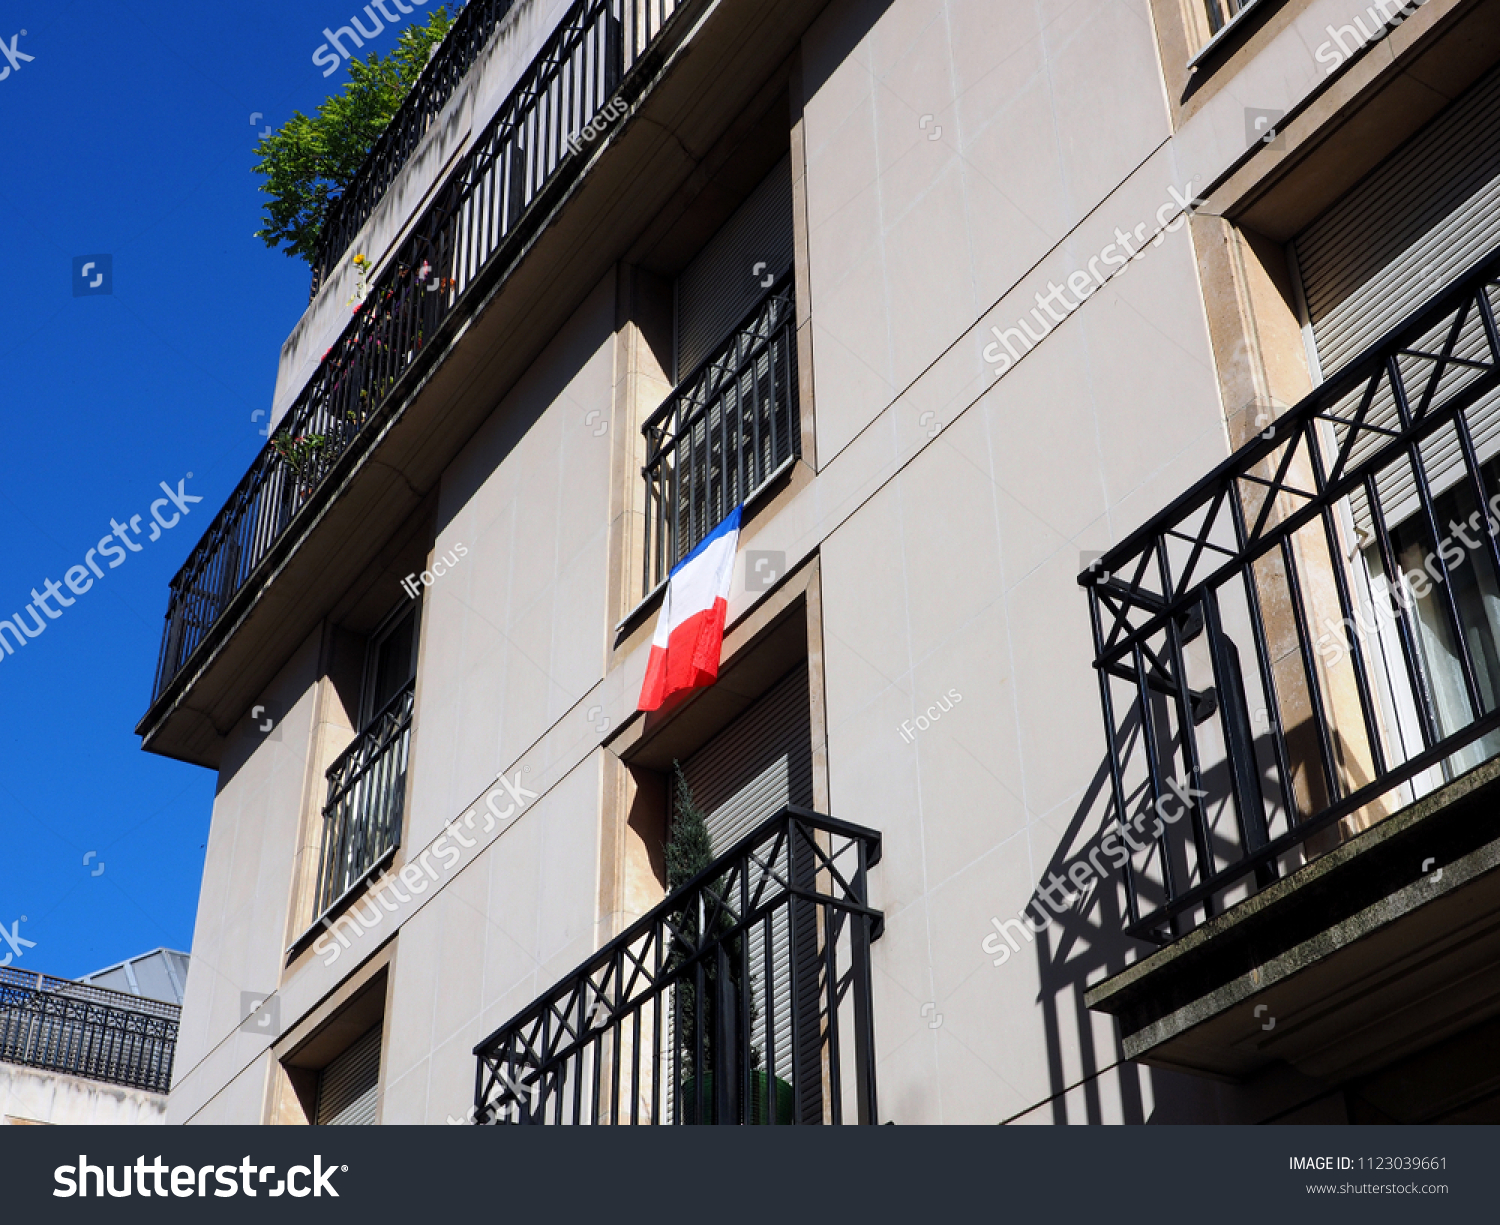 PARIS, FRANCE - JUNE 28, 2018: A French flag is displayed on a balcony in support of the French team in the 2018 World Cup on June 28, 2018 in Paris, France.